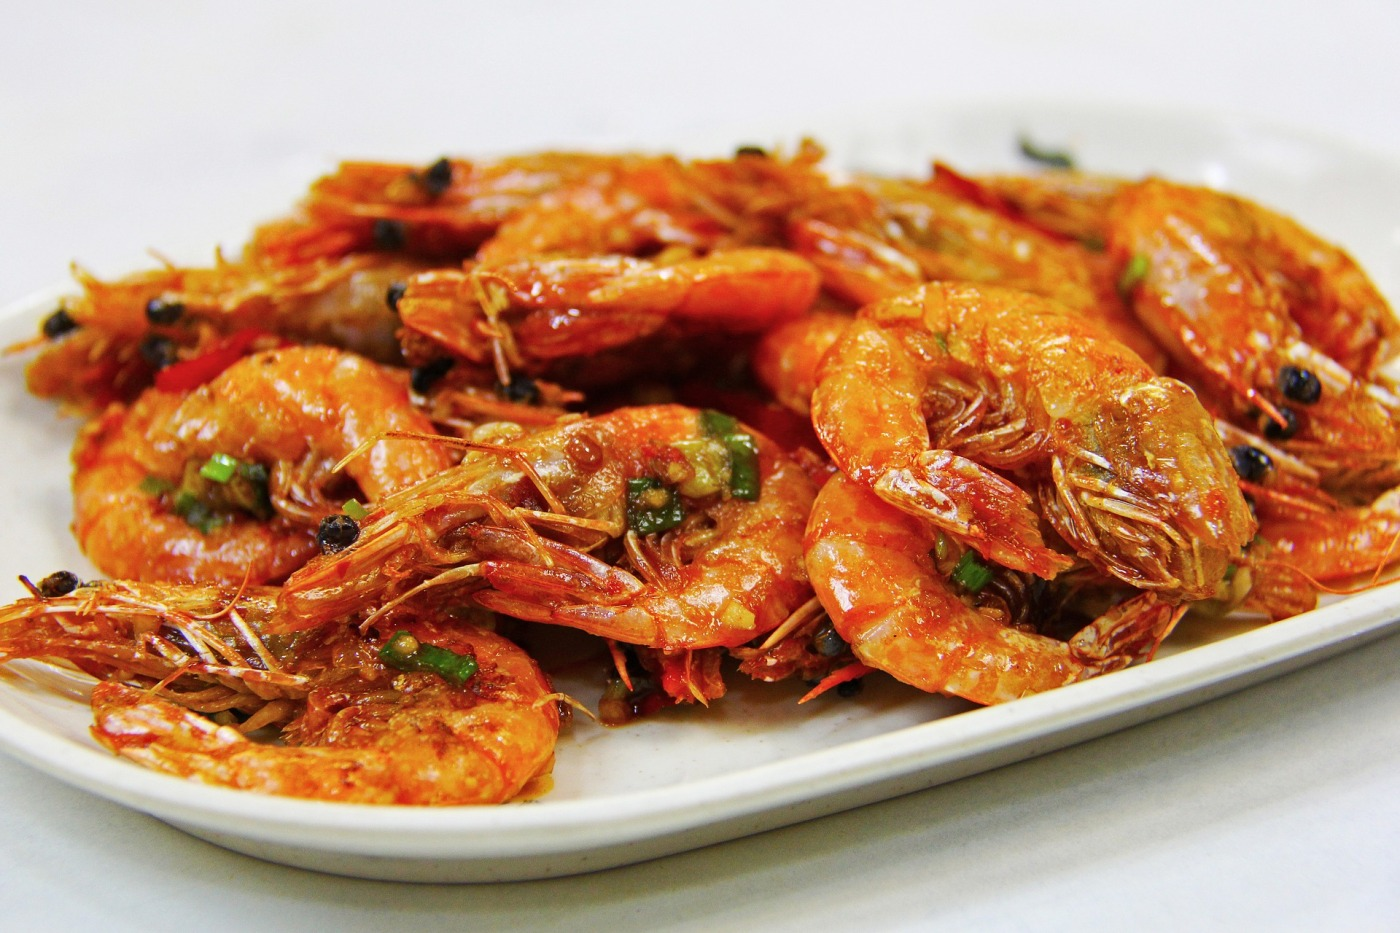 fried-prawn-1737593_1920